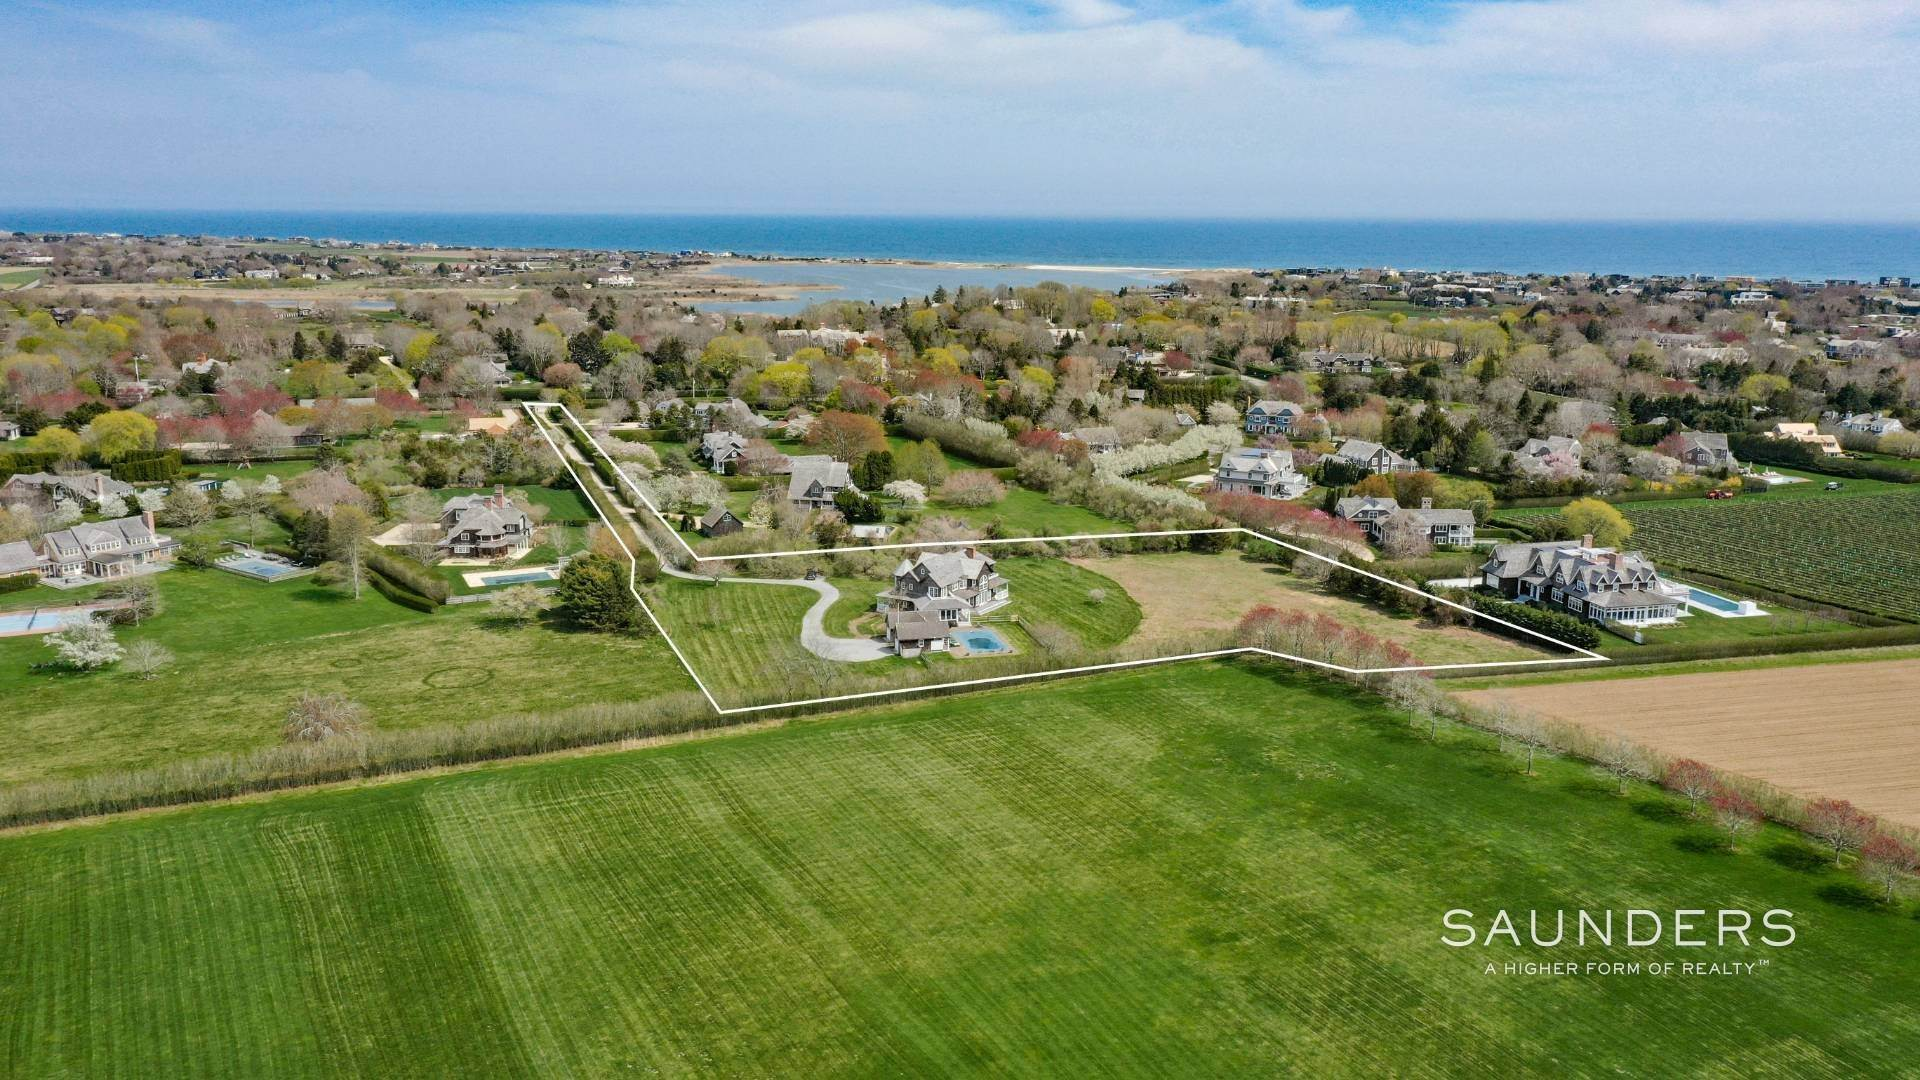 Single Family Homes for Sale at Prestigious Ocean Road 770 Ocean Road, Bridgehampton, Southampton Town, NY 11932